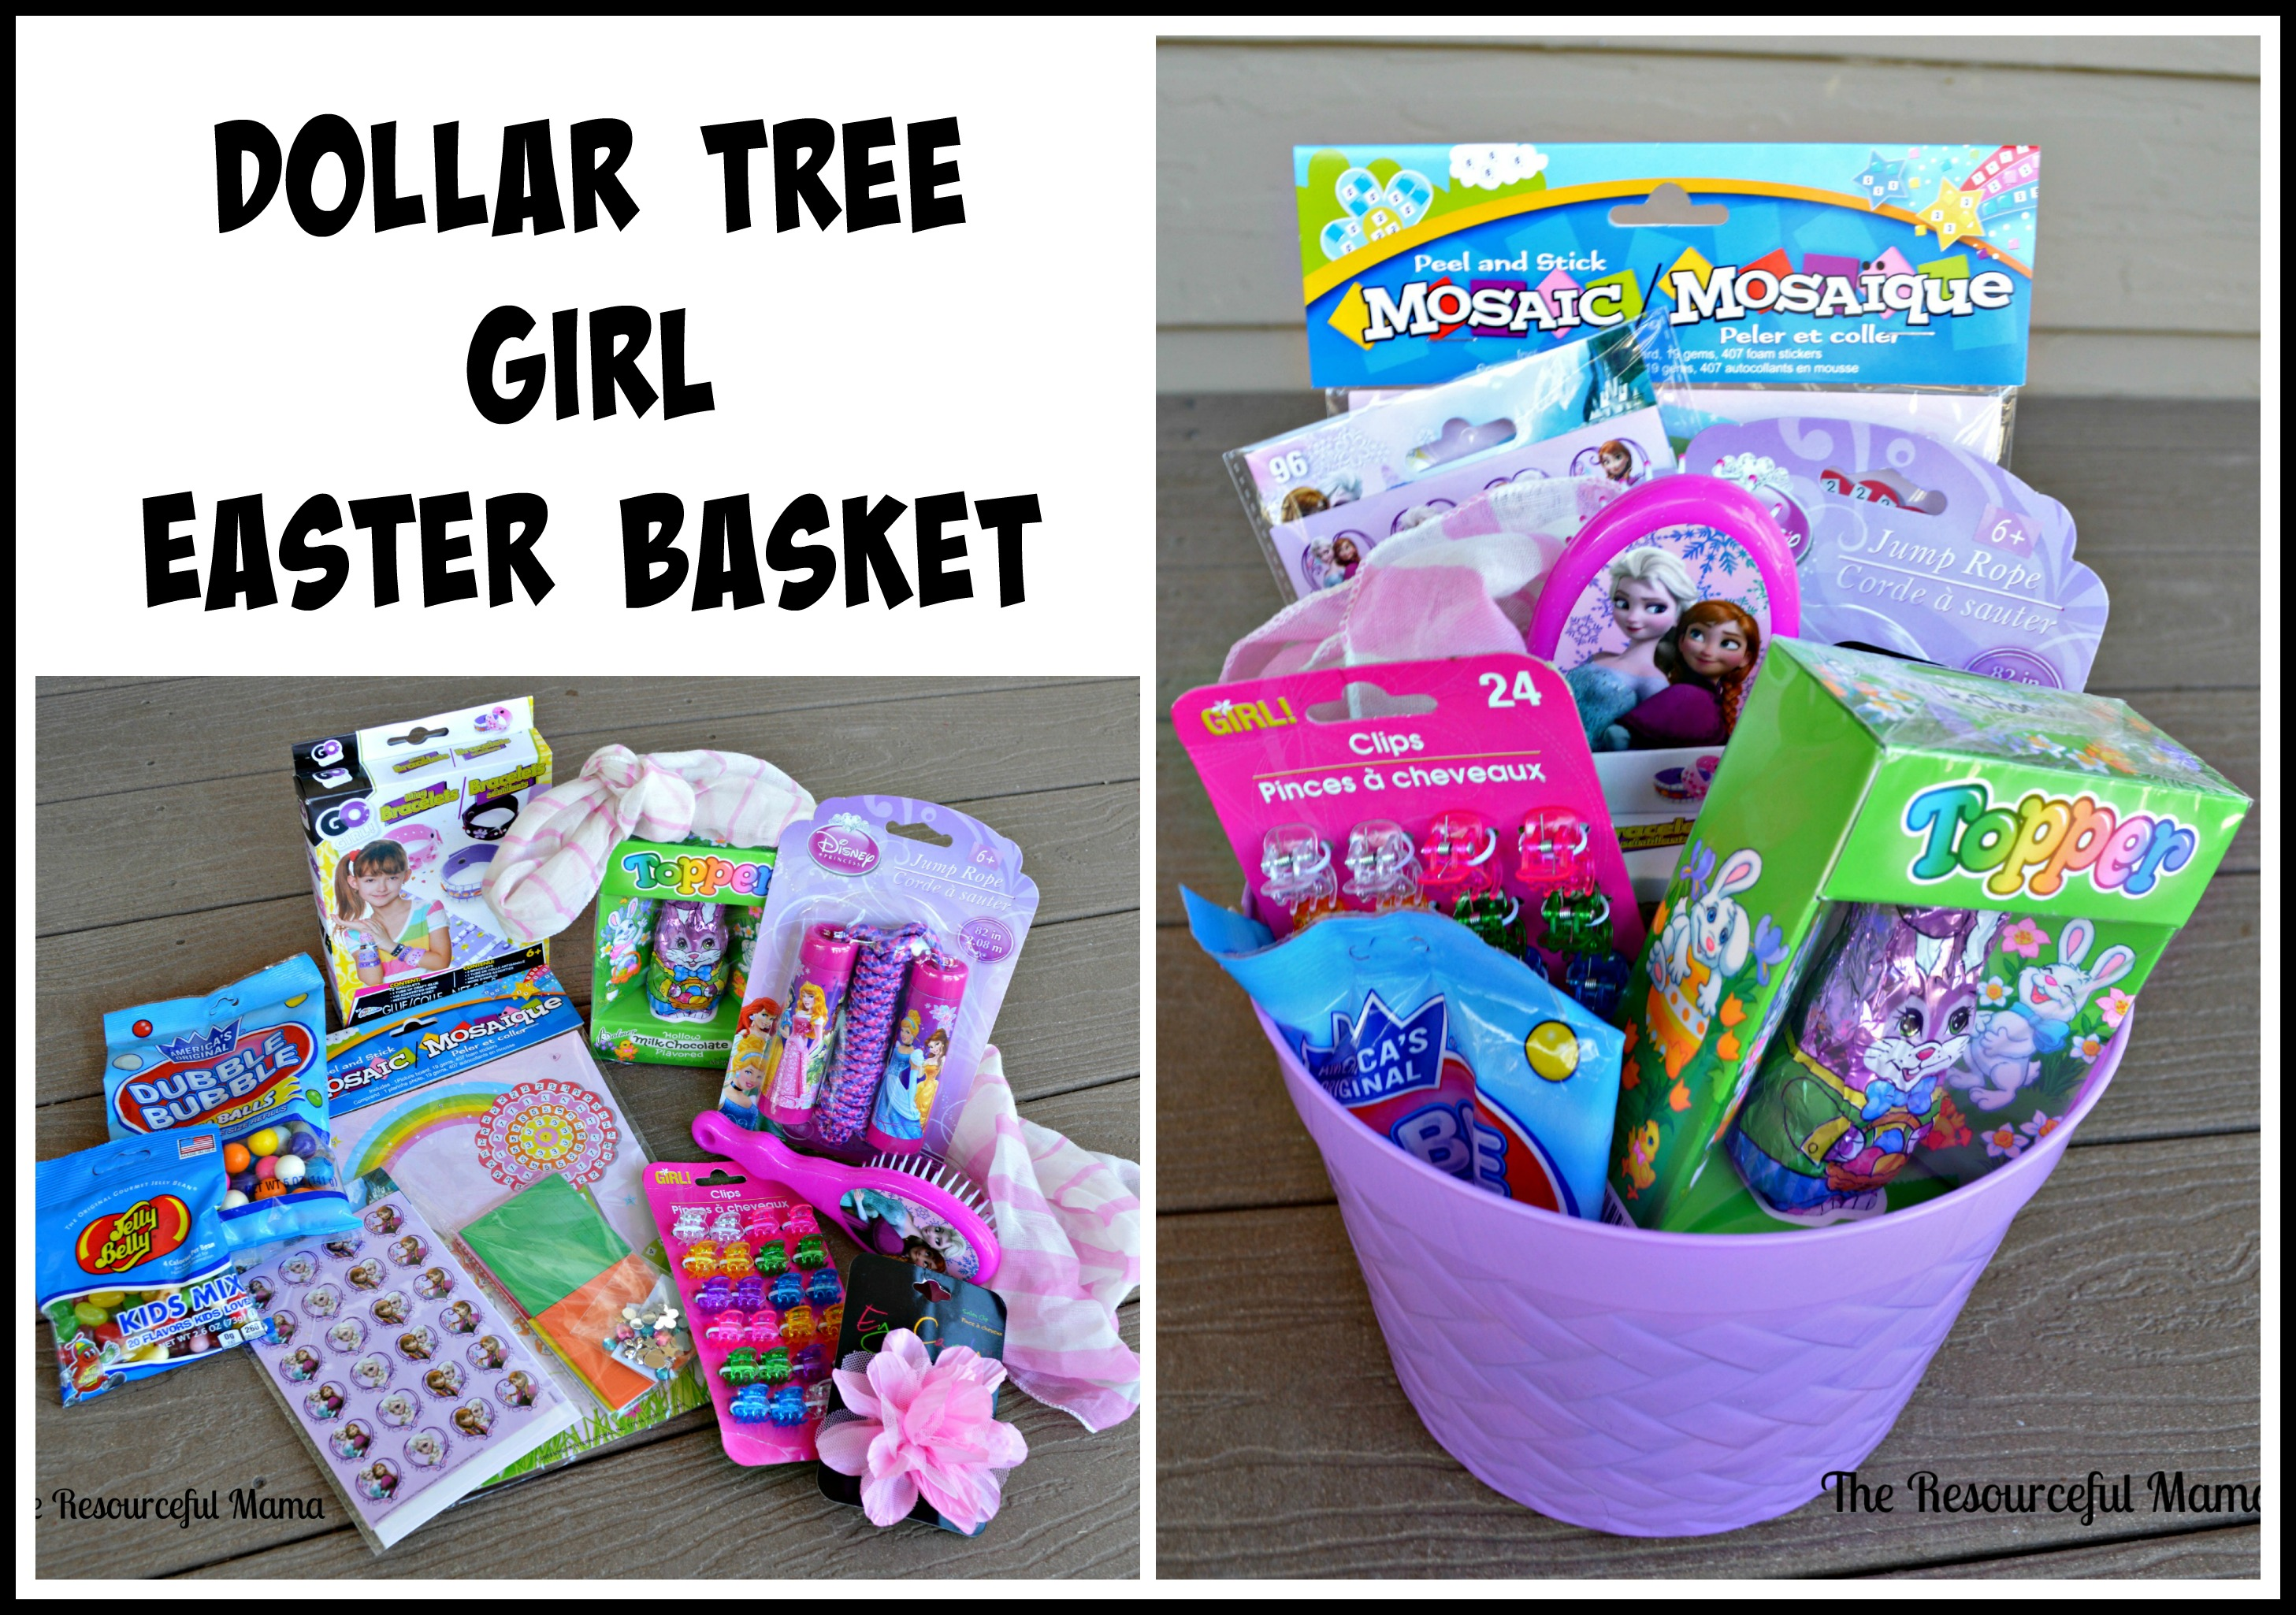 Dollar Tree Easter Baskets - The Resourceful Mama